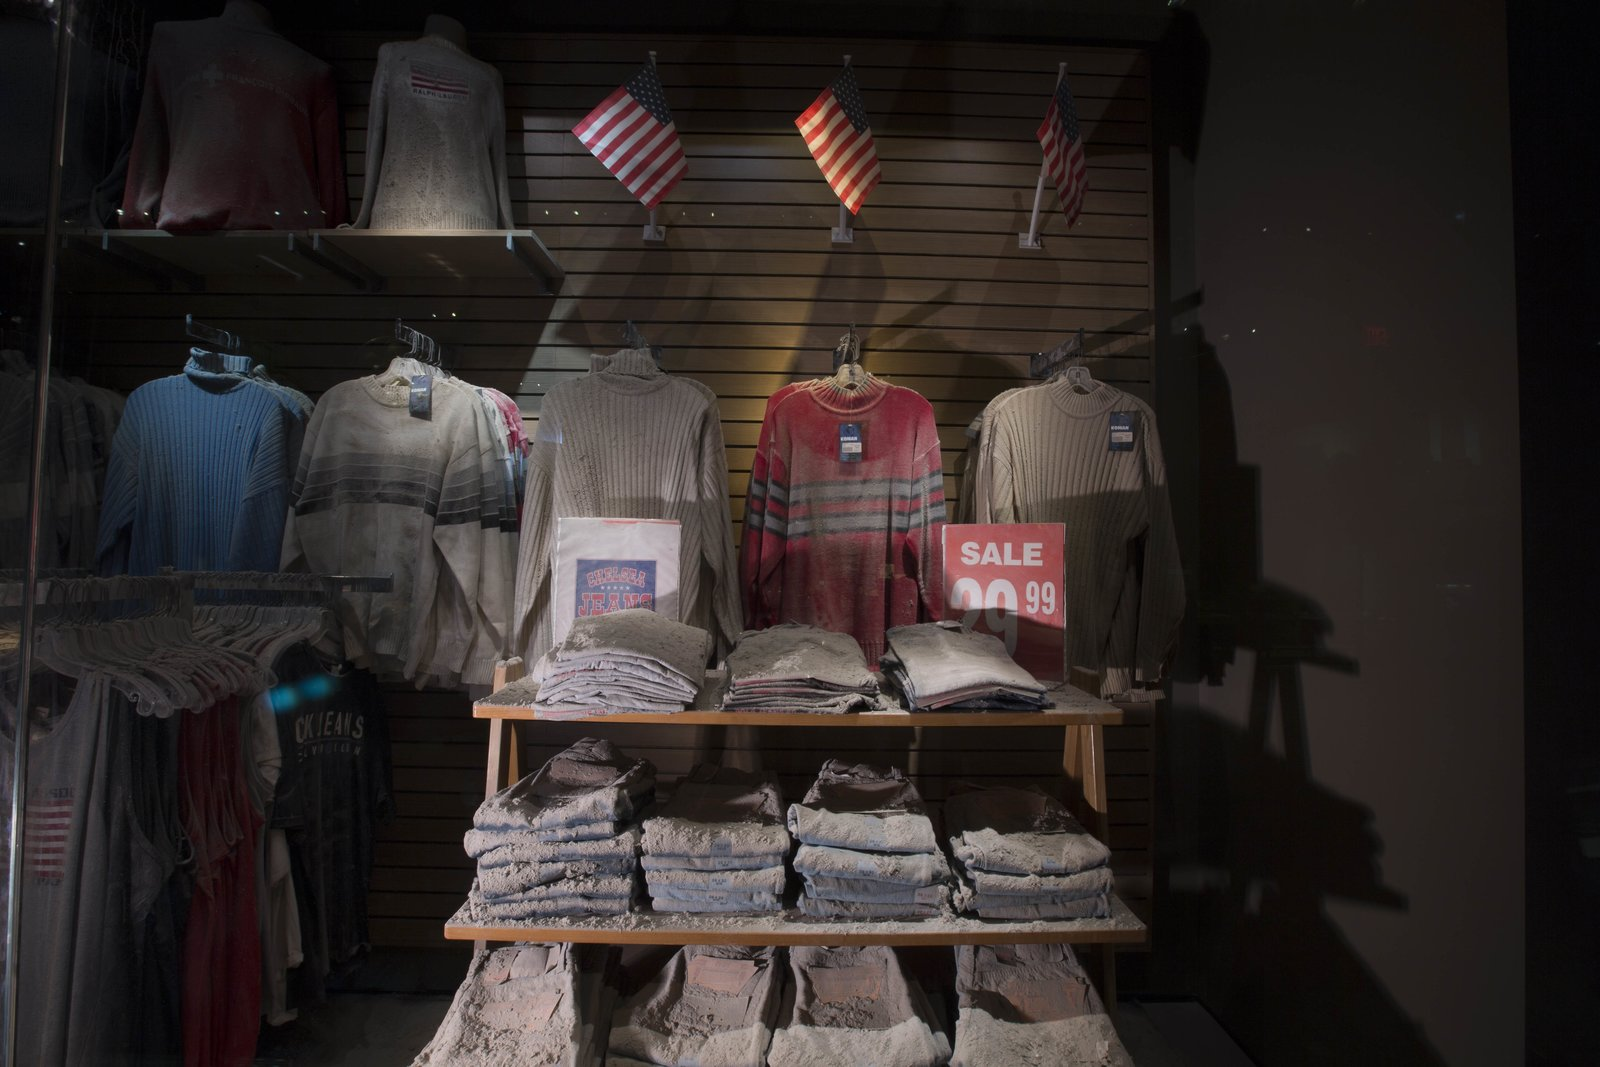 A display from the Chelsea Jeans store near the World Trade Center. Photo by Jin Lee.  Photo 10 of 14 in At Ground Zero Bedrock, the 9/11 Museum Prepares for Visitors